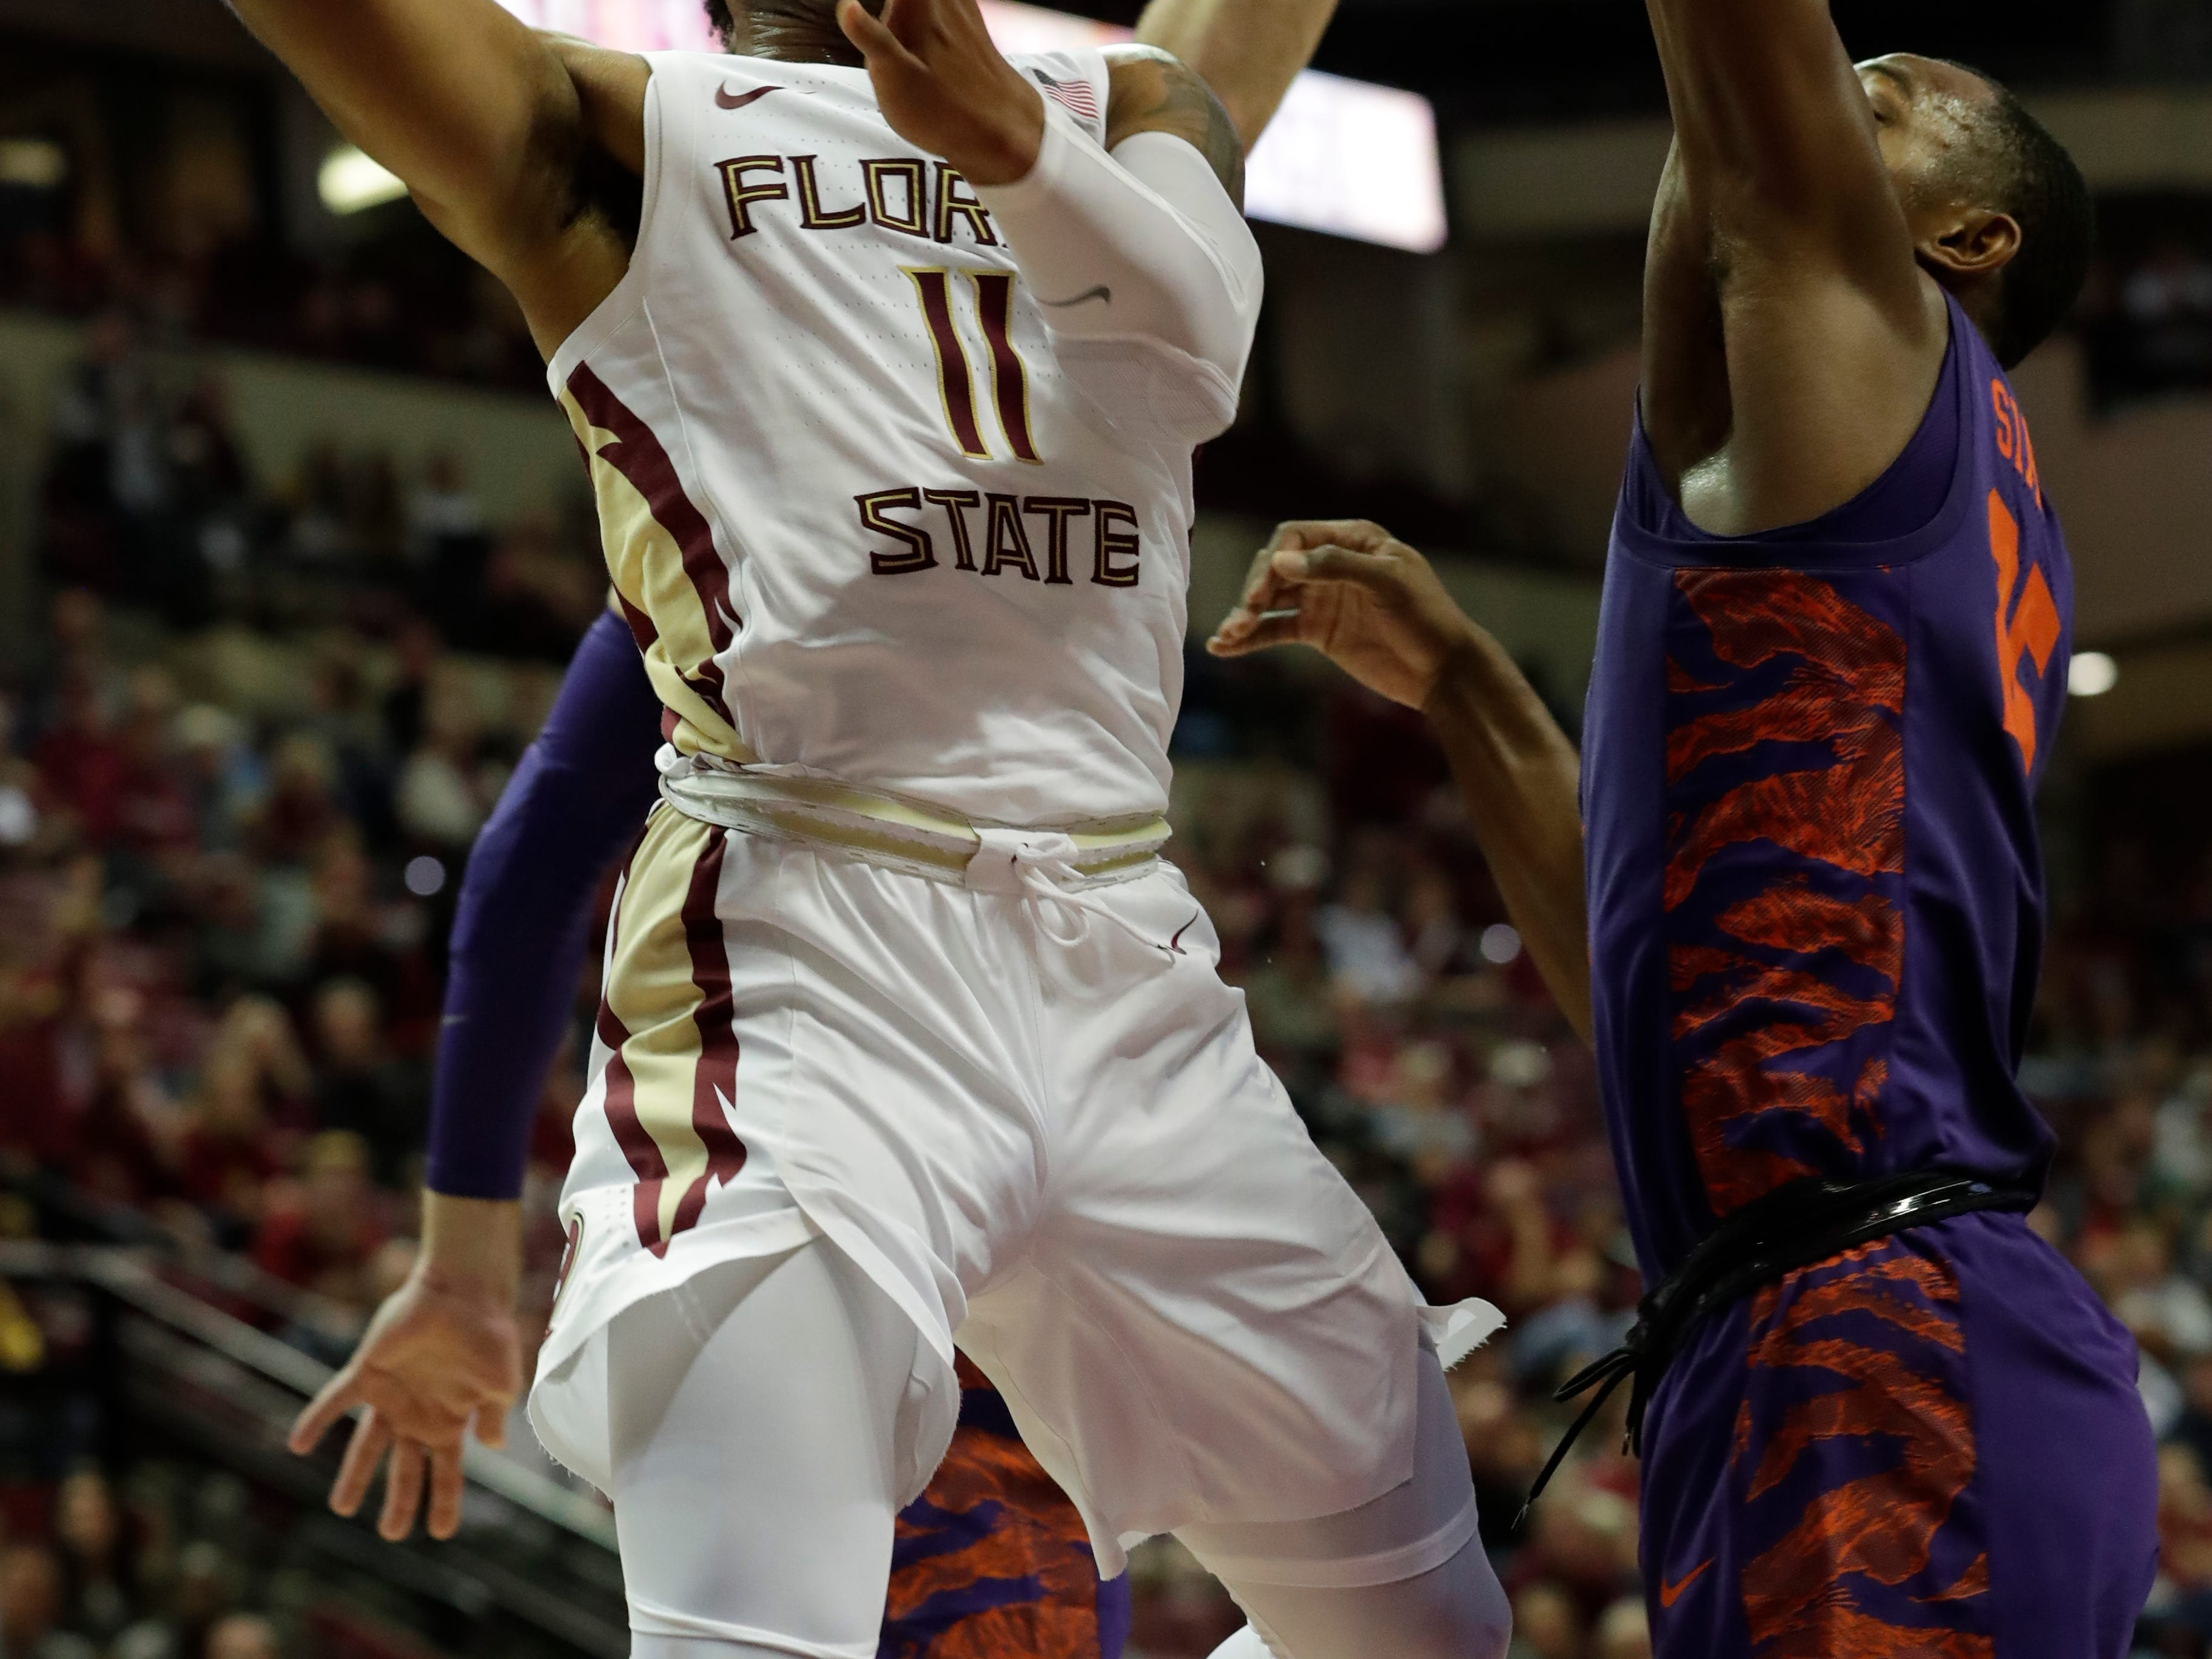 Florida State Seminoles guard David Nichols (11) gets around his defenders as he goes in for a layup. The Florida State Seminoles face off against the Clemson Tigers at the Tucker Civic Center, Tuesday, Jan. 22, 2019.